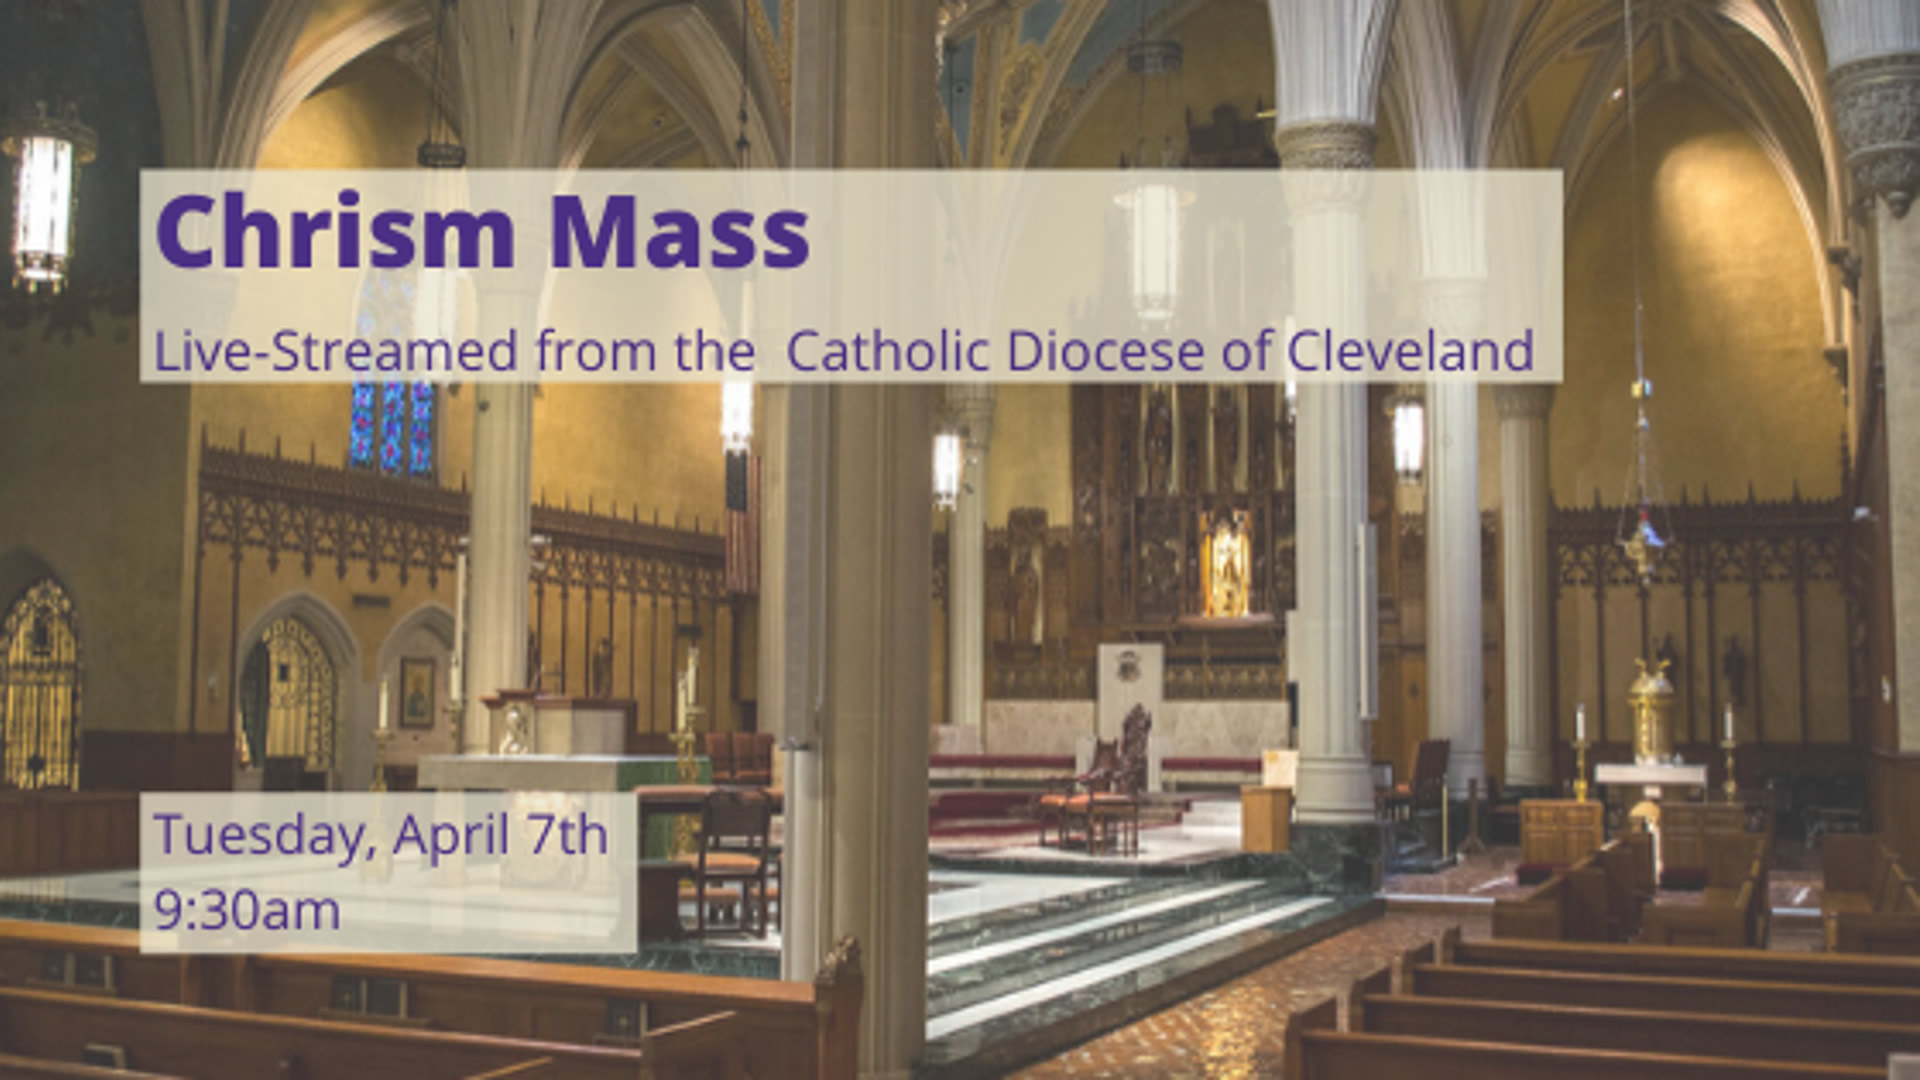 Chrism Mass - Live-Streamed from the Catholic Diocese of Cleveland - Tuesday, April 7th at 9:30am